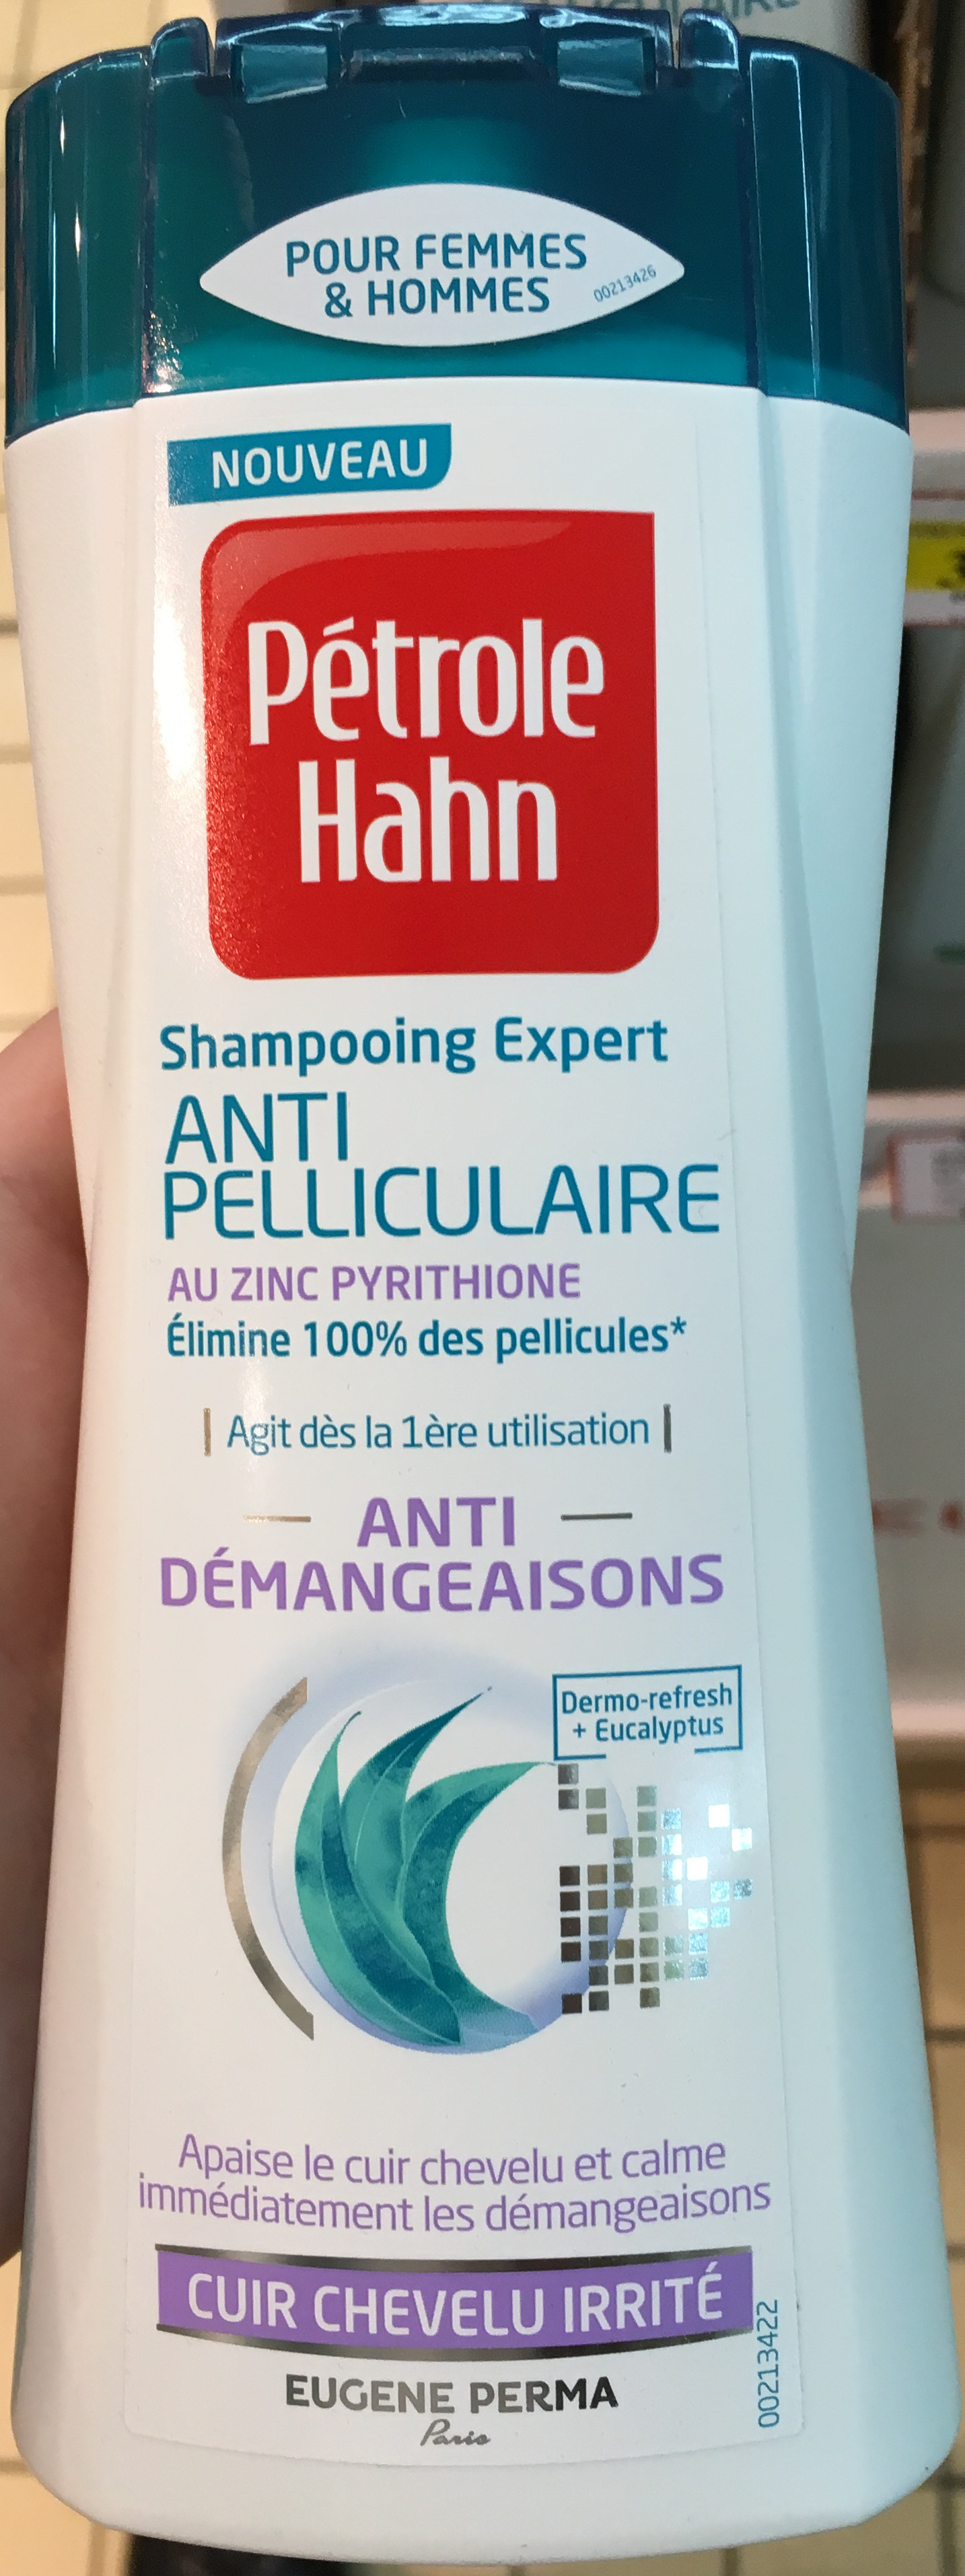 Shampooing expert anti pelliculaire anti démangeaisons - Product - fr